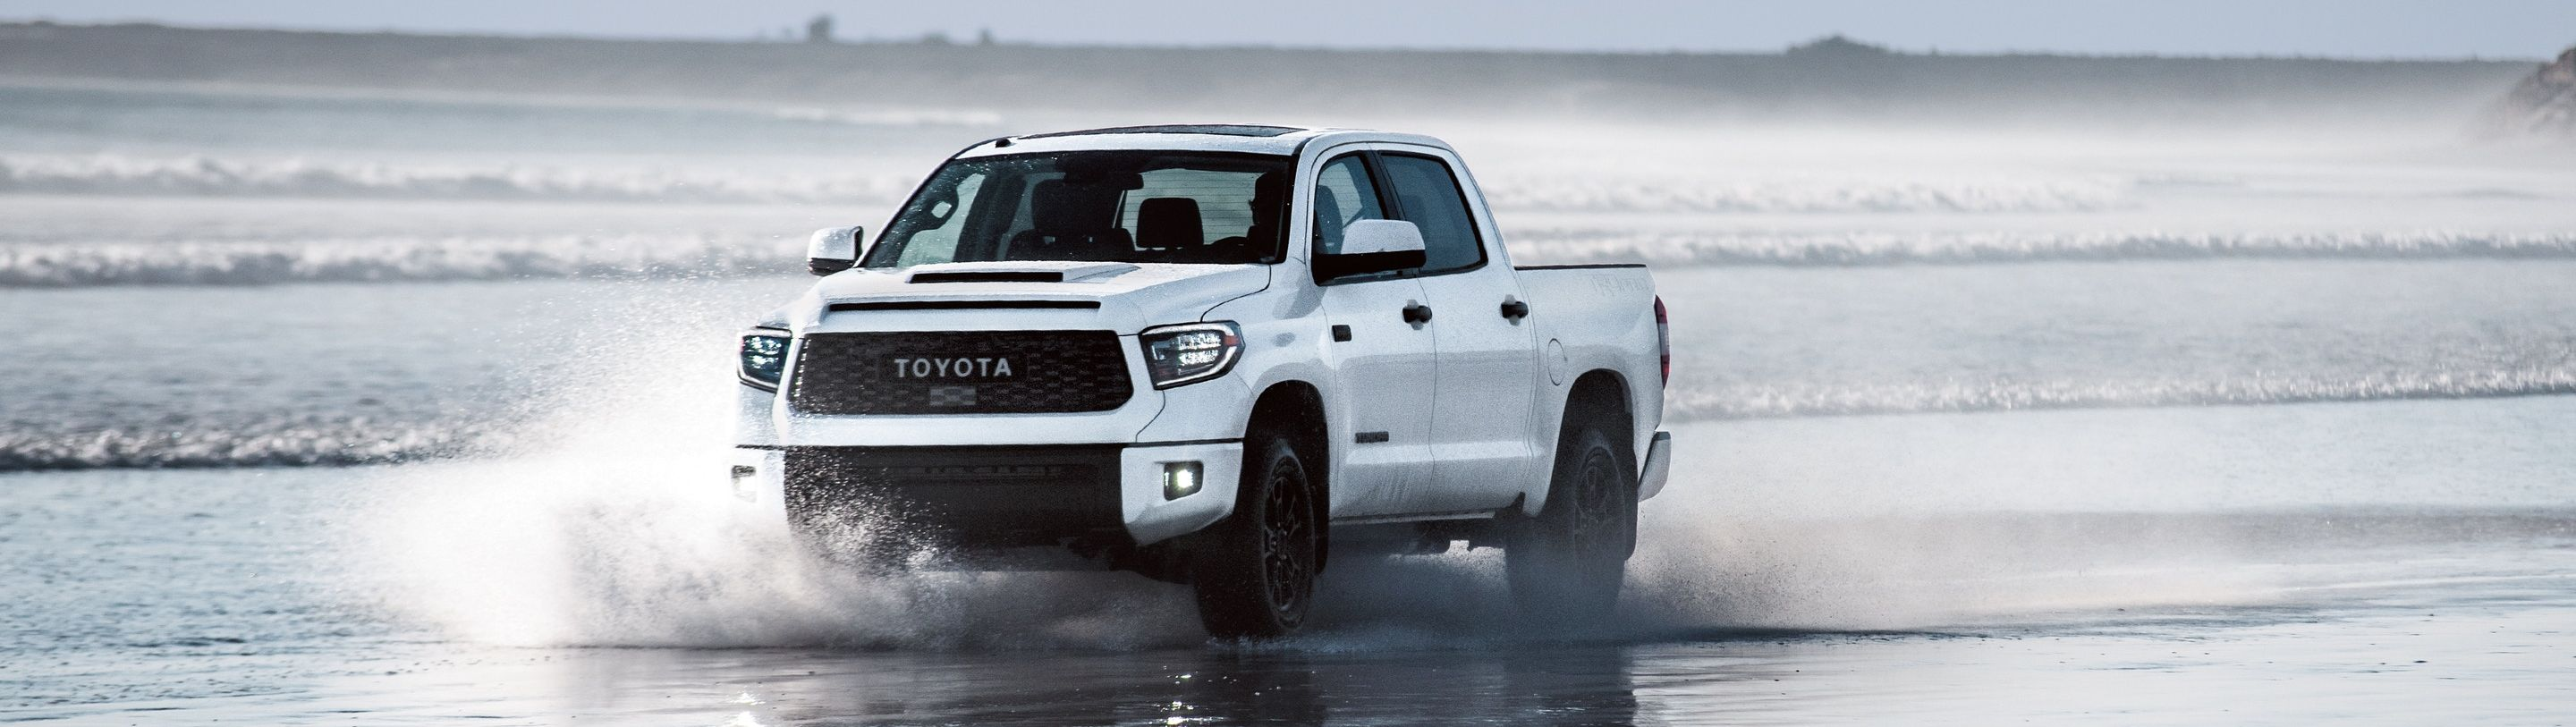 2019 Toyota Tundra for Sale near Middletown, DE